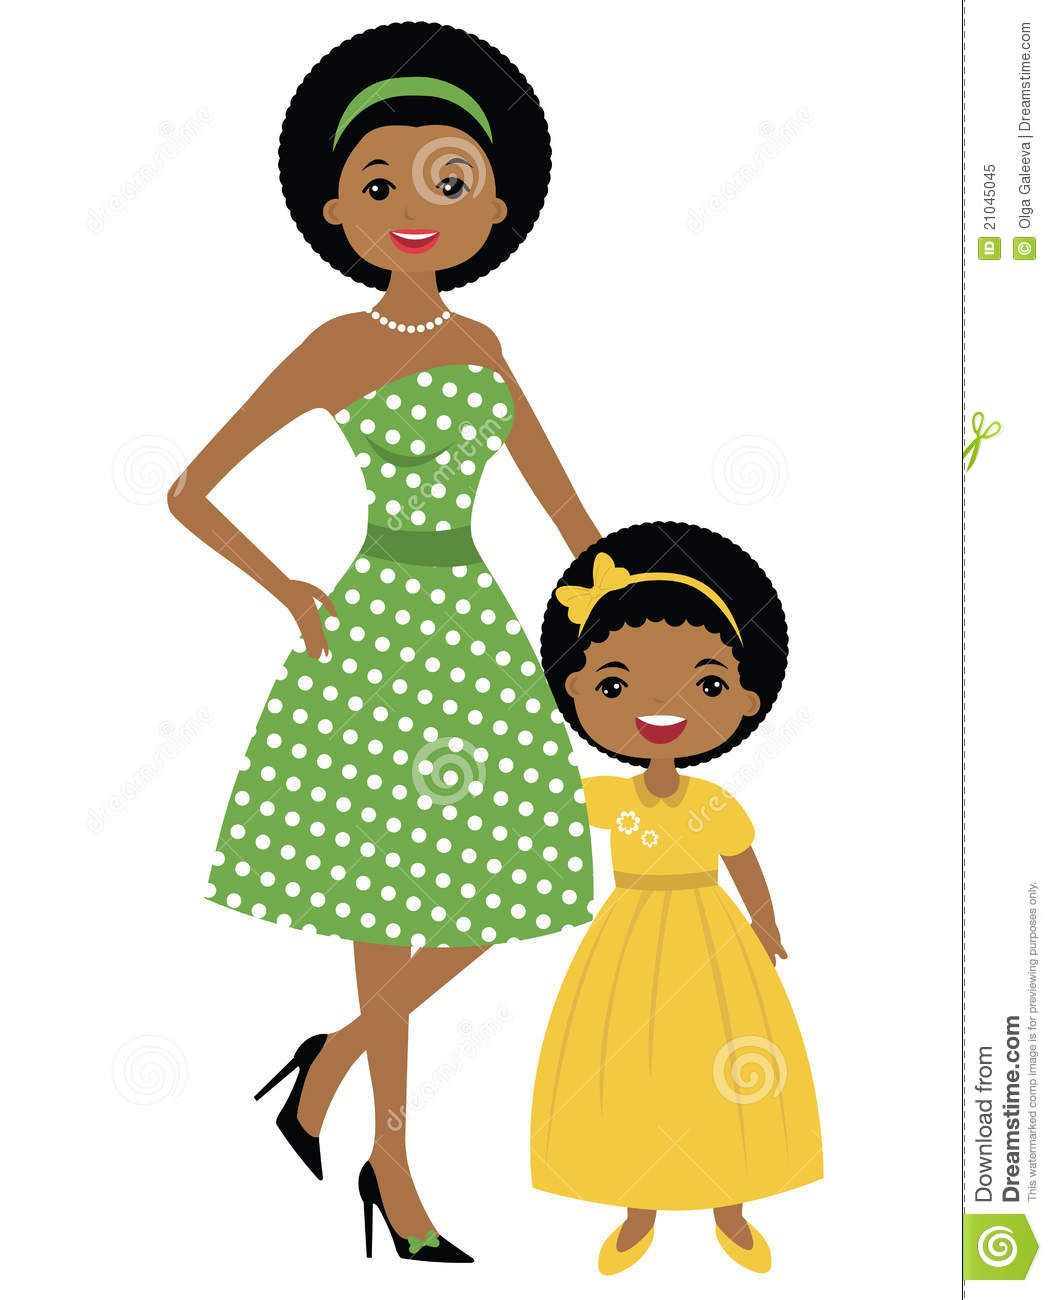 african american business woman clipart free clip art images rh pinterest co uk clip art of women silhouettes clip art of women silhouettes